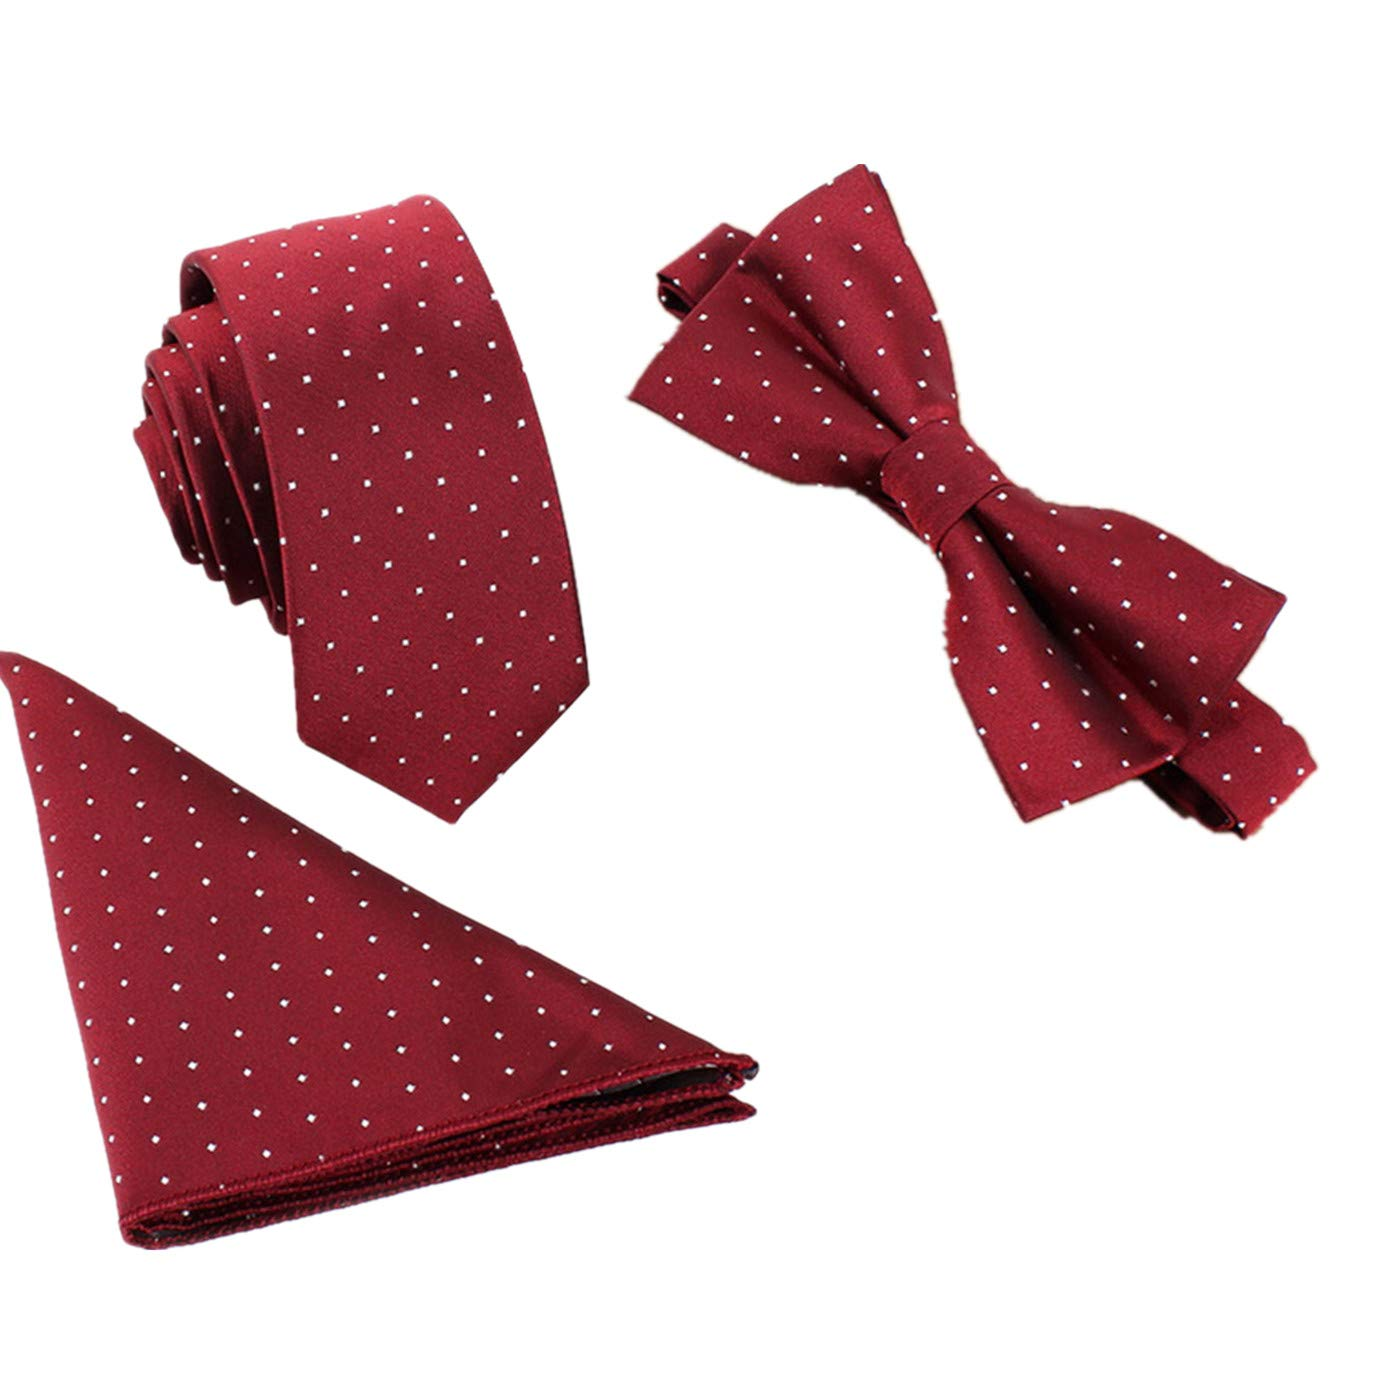 Classic Floral Paisley Tie Bow Tie Pocket Square Set Suit Wedding Necktie and Bow Tie Setpc Floral Design Matching Pattern Mens Fashion Accessories Set Red